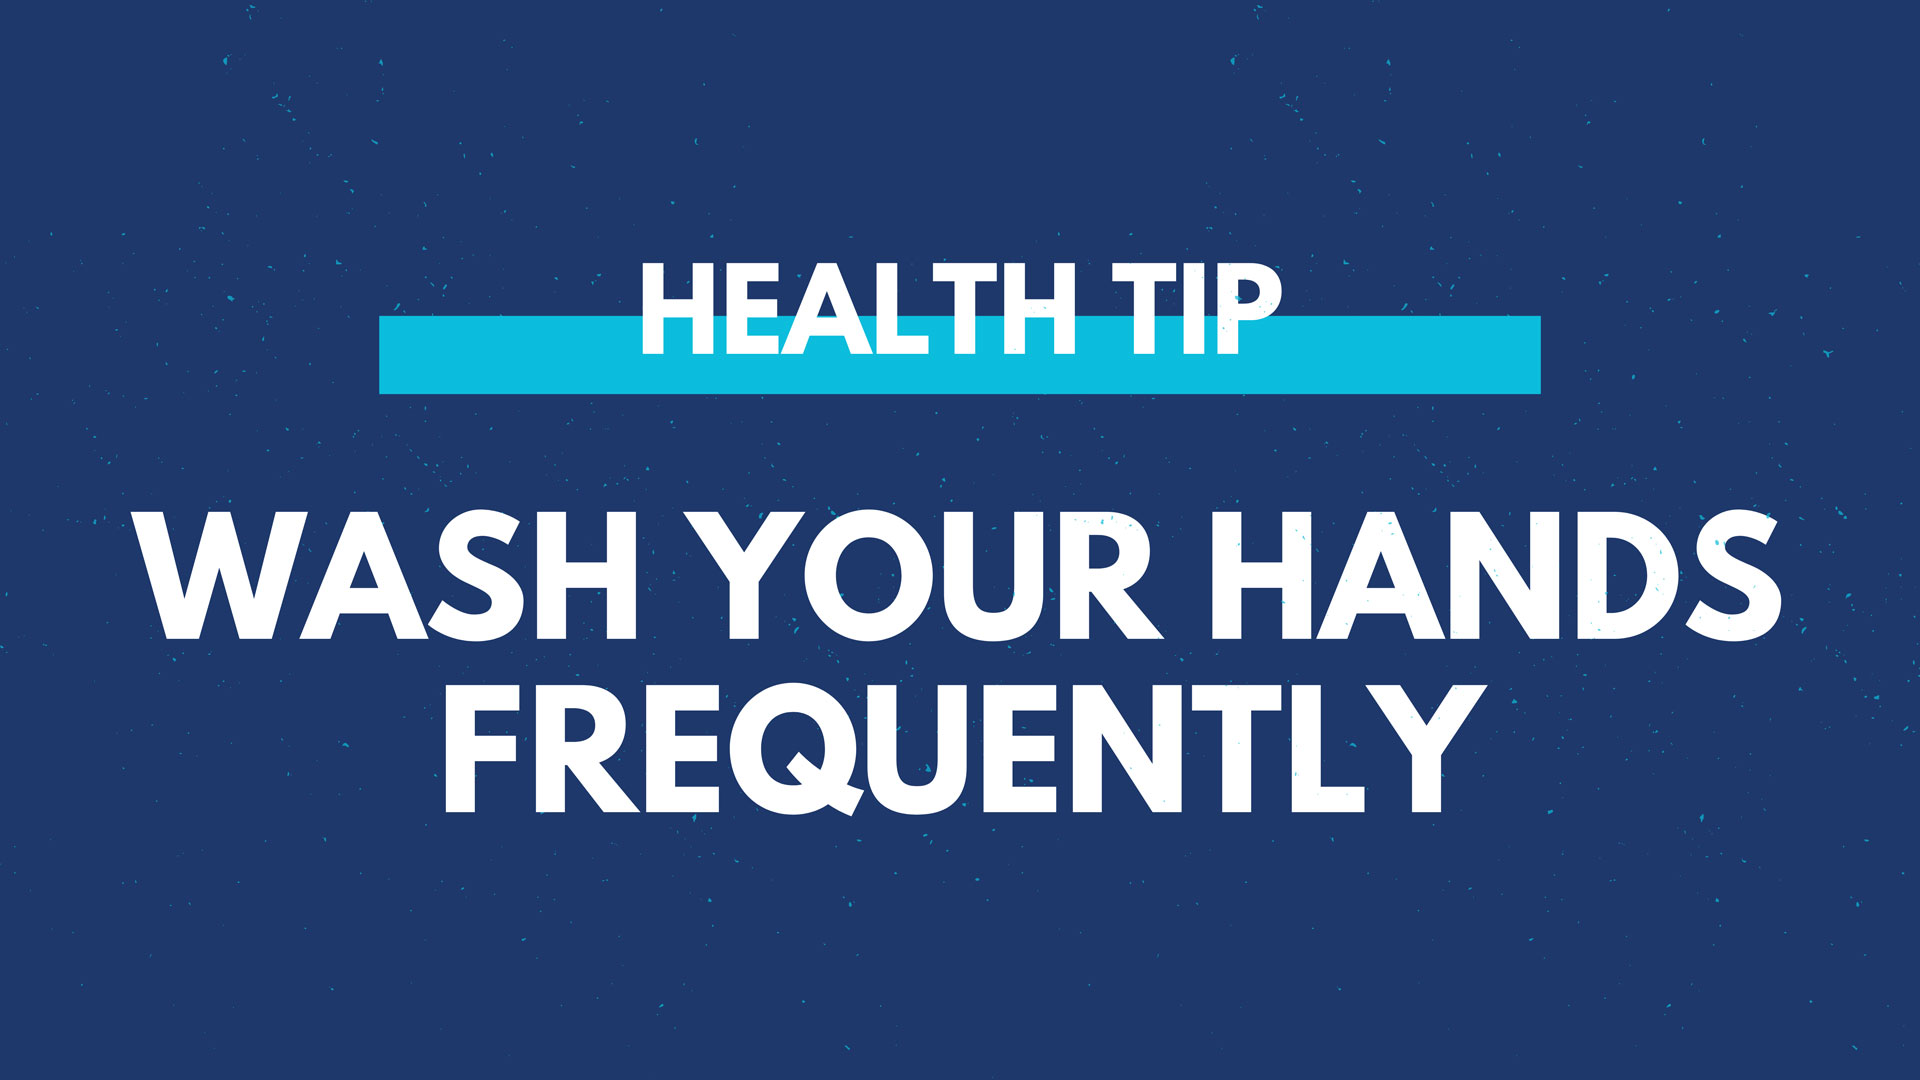 Health Tip - Wash Hands Frequently